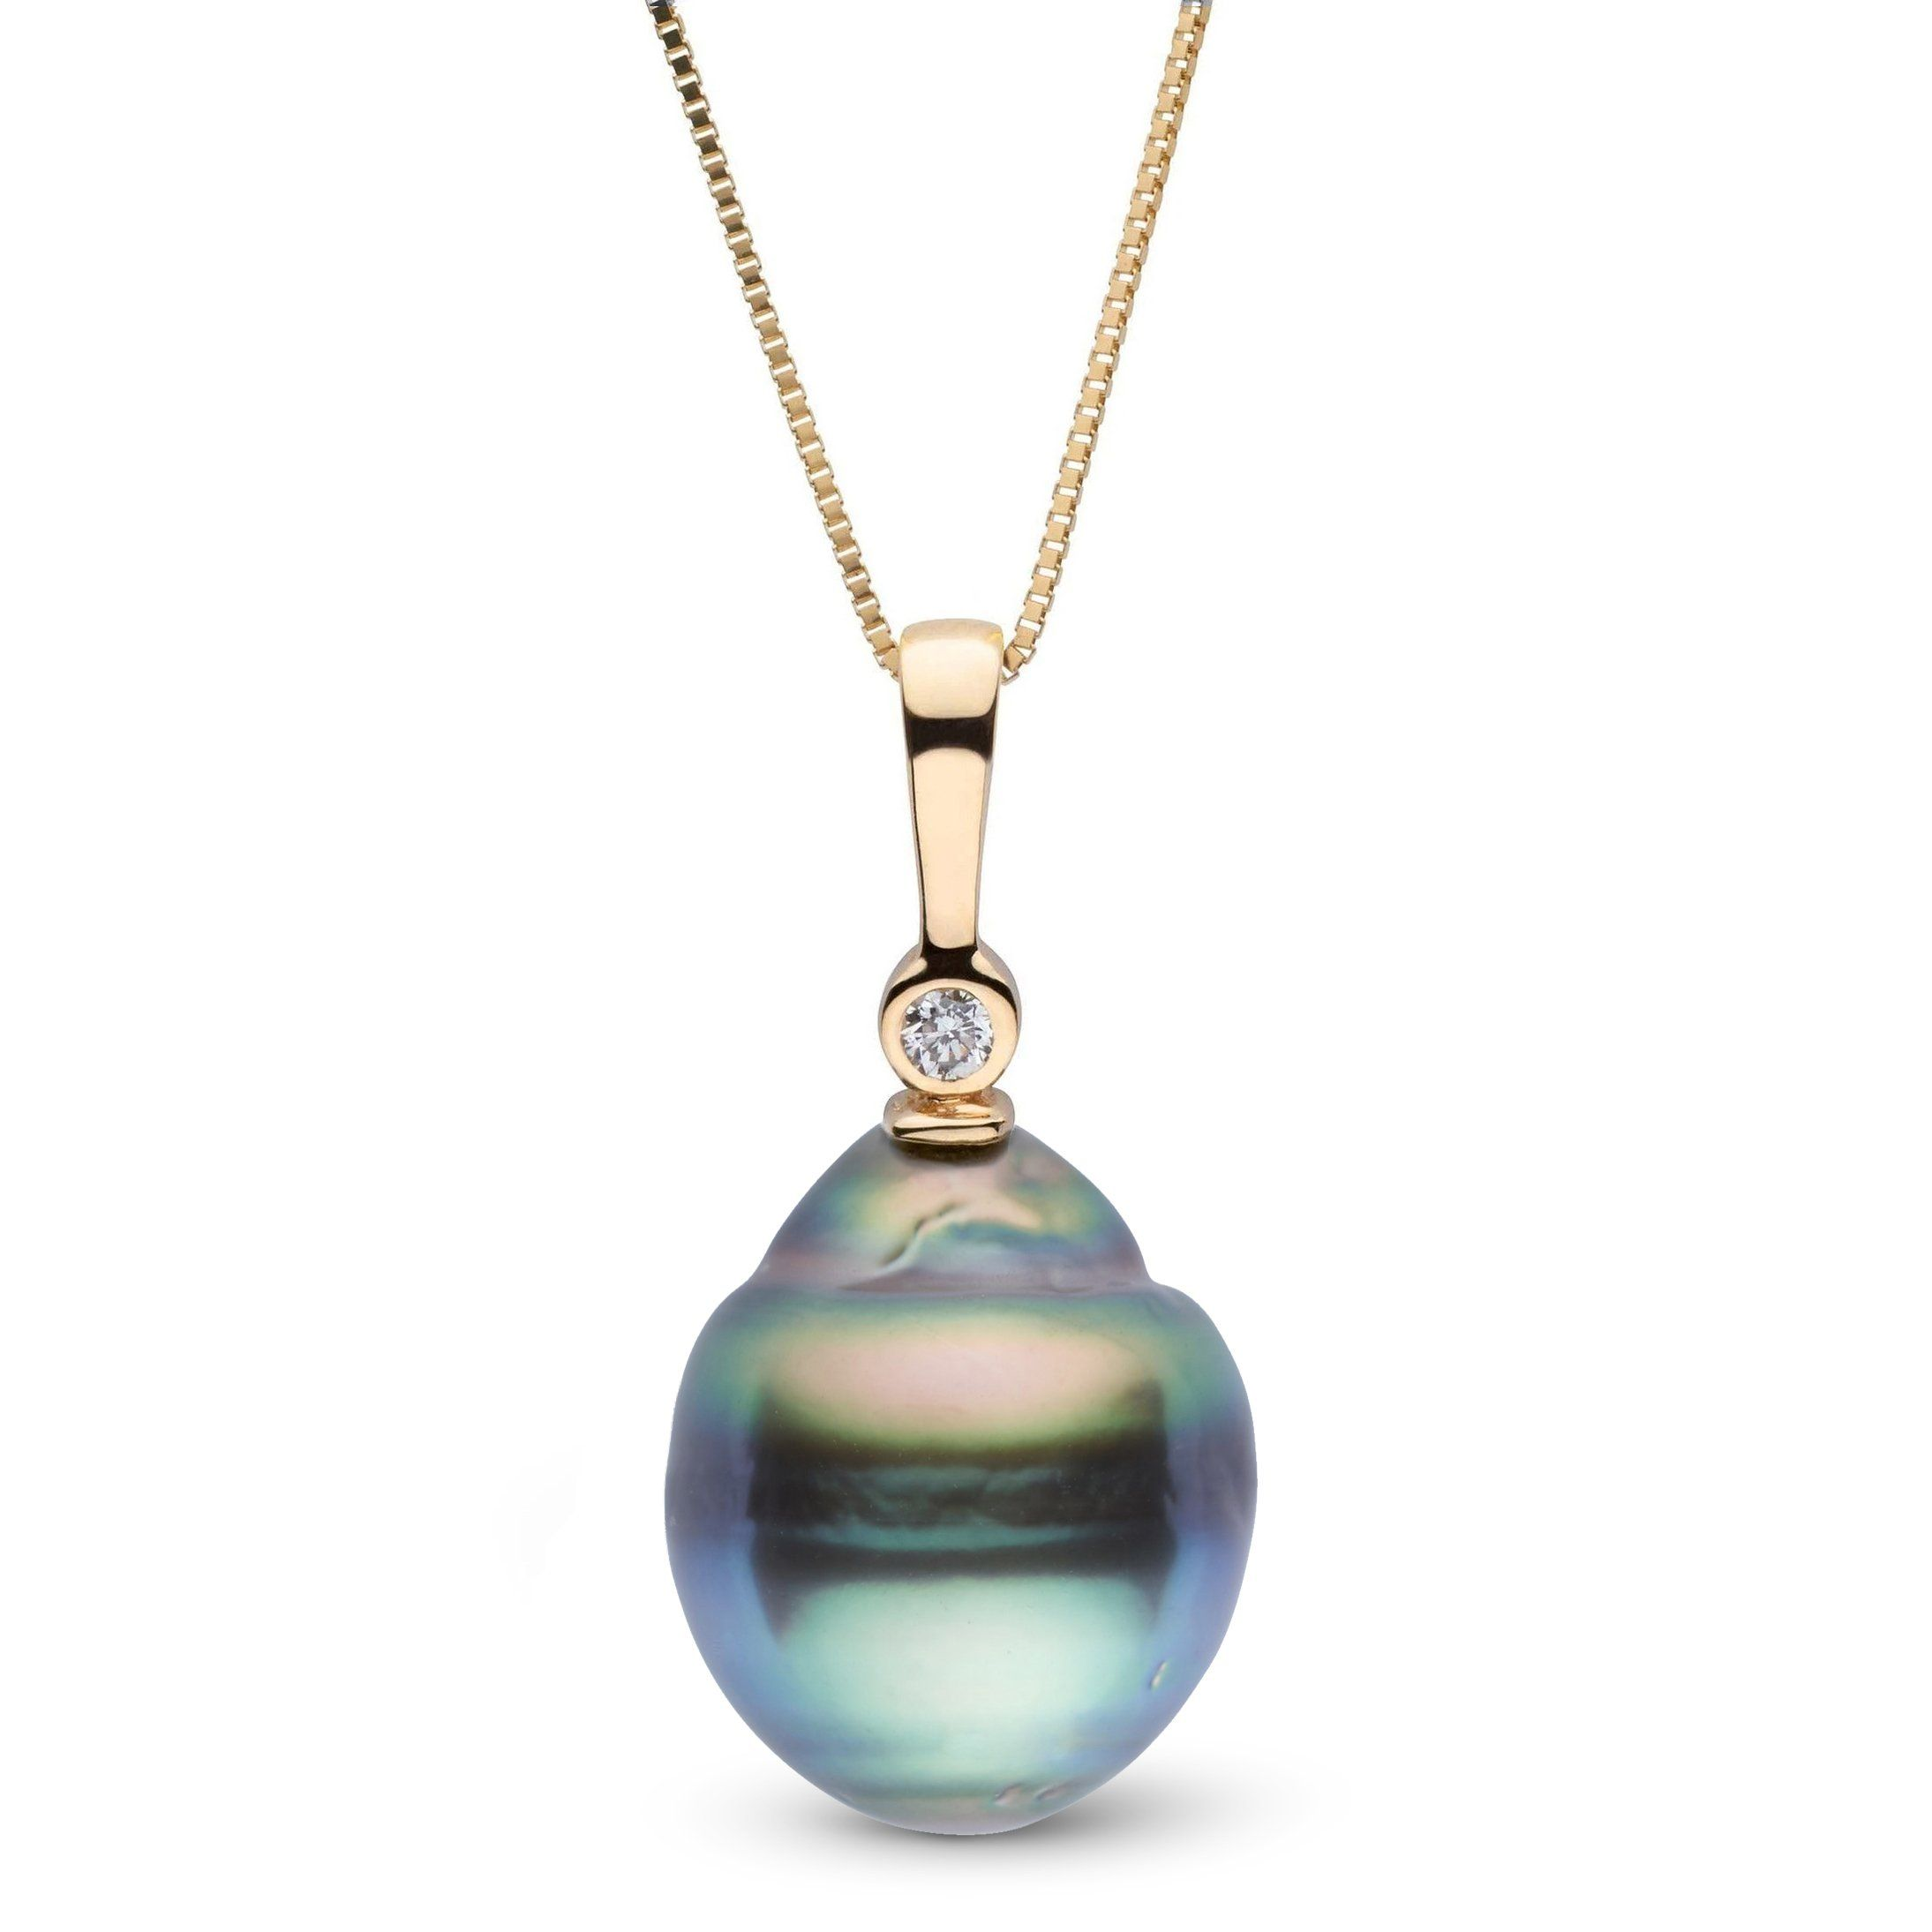 Aspire Collection 11.0-12.0 mm Baroque Tahitian Pearl & Diamond Pendant